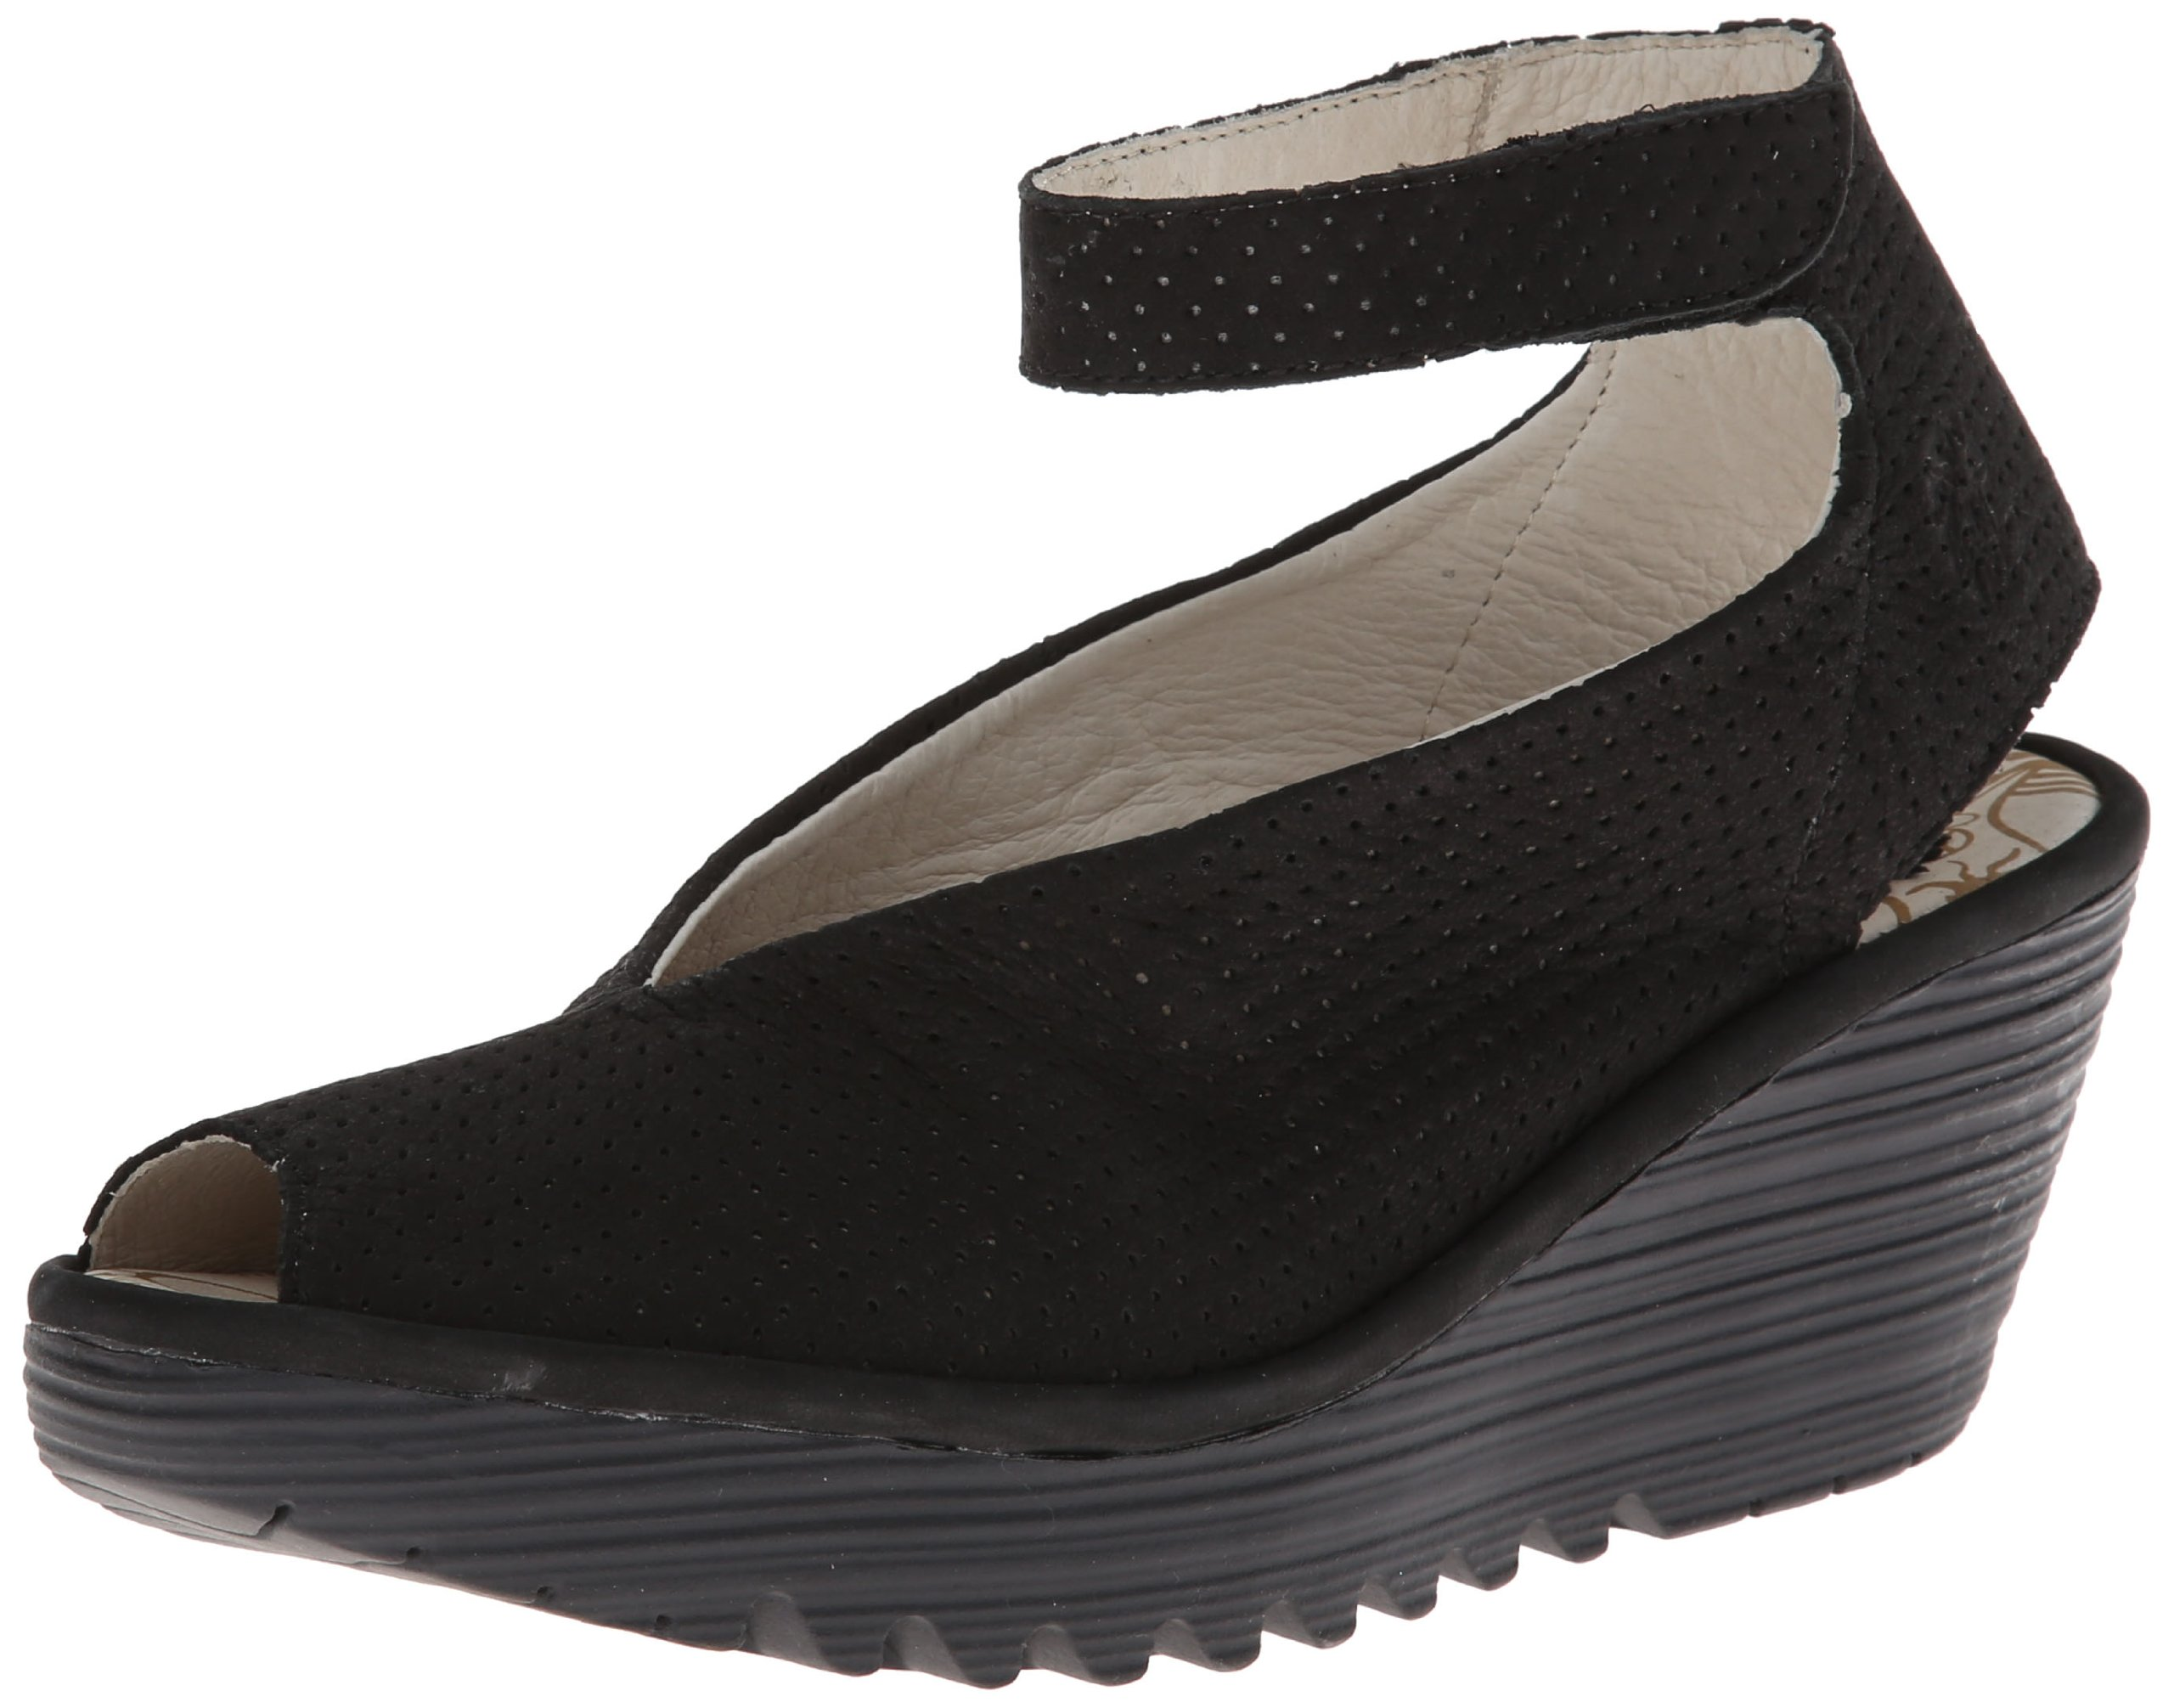 FLY London Women's Yala Perforated Wedge Pump,Black Cupido,37 EU/6-6.5 M US